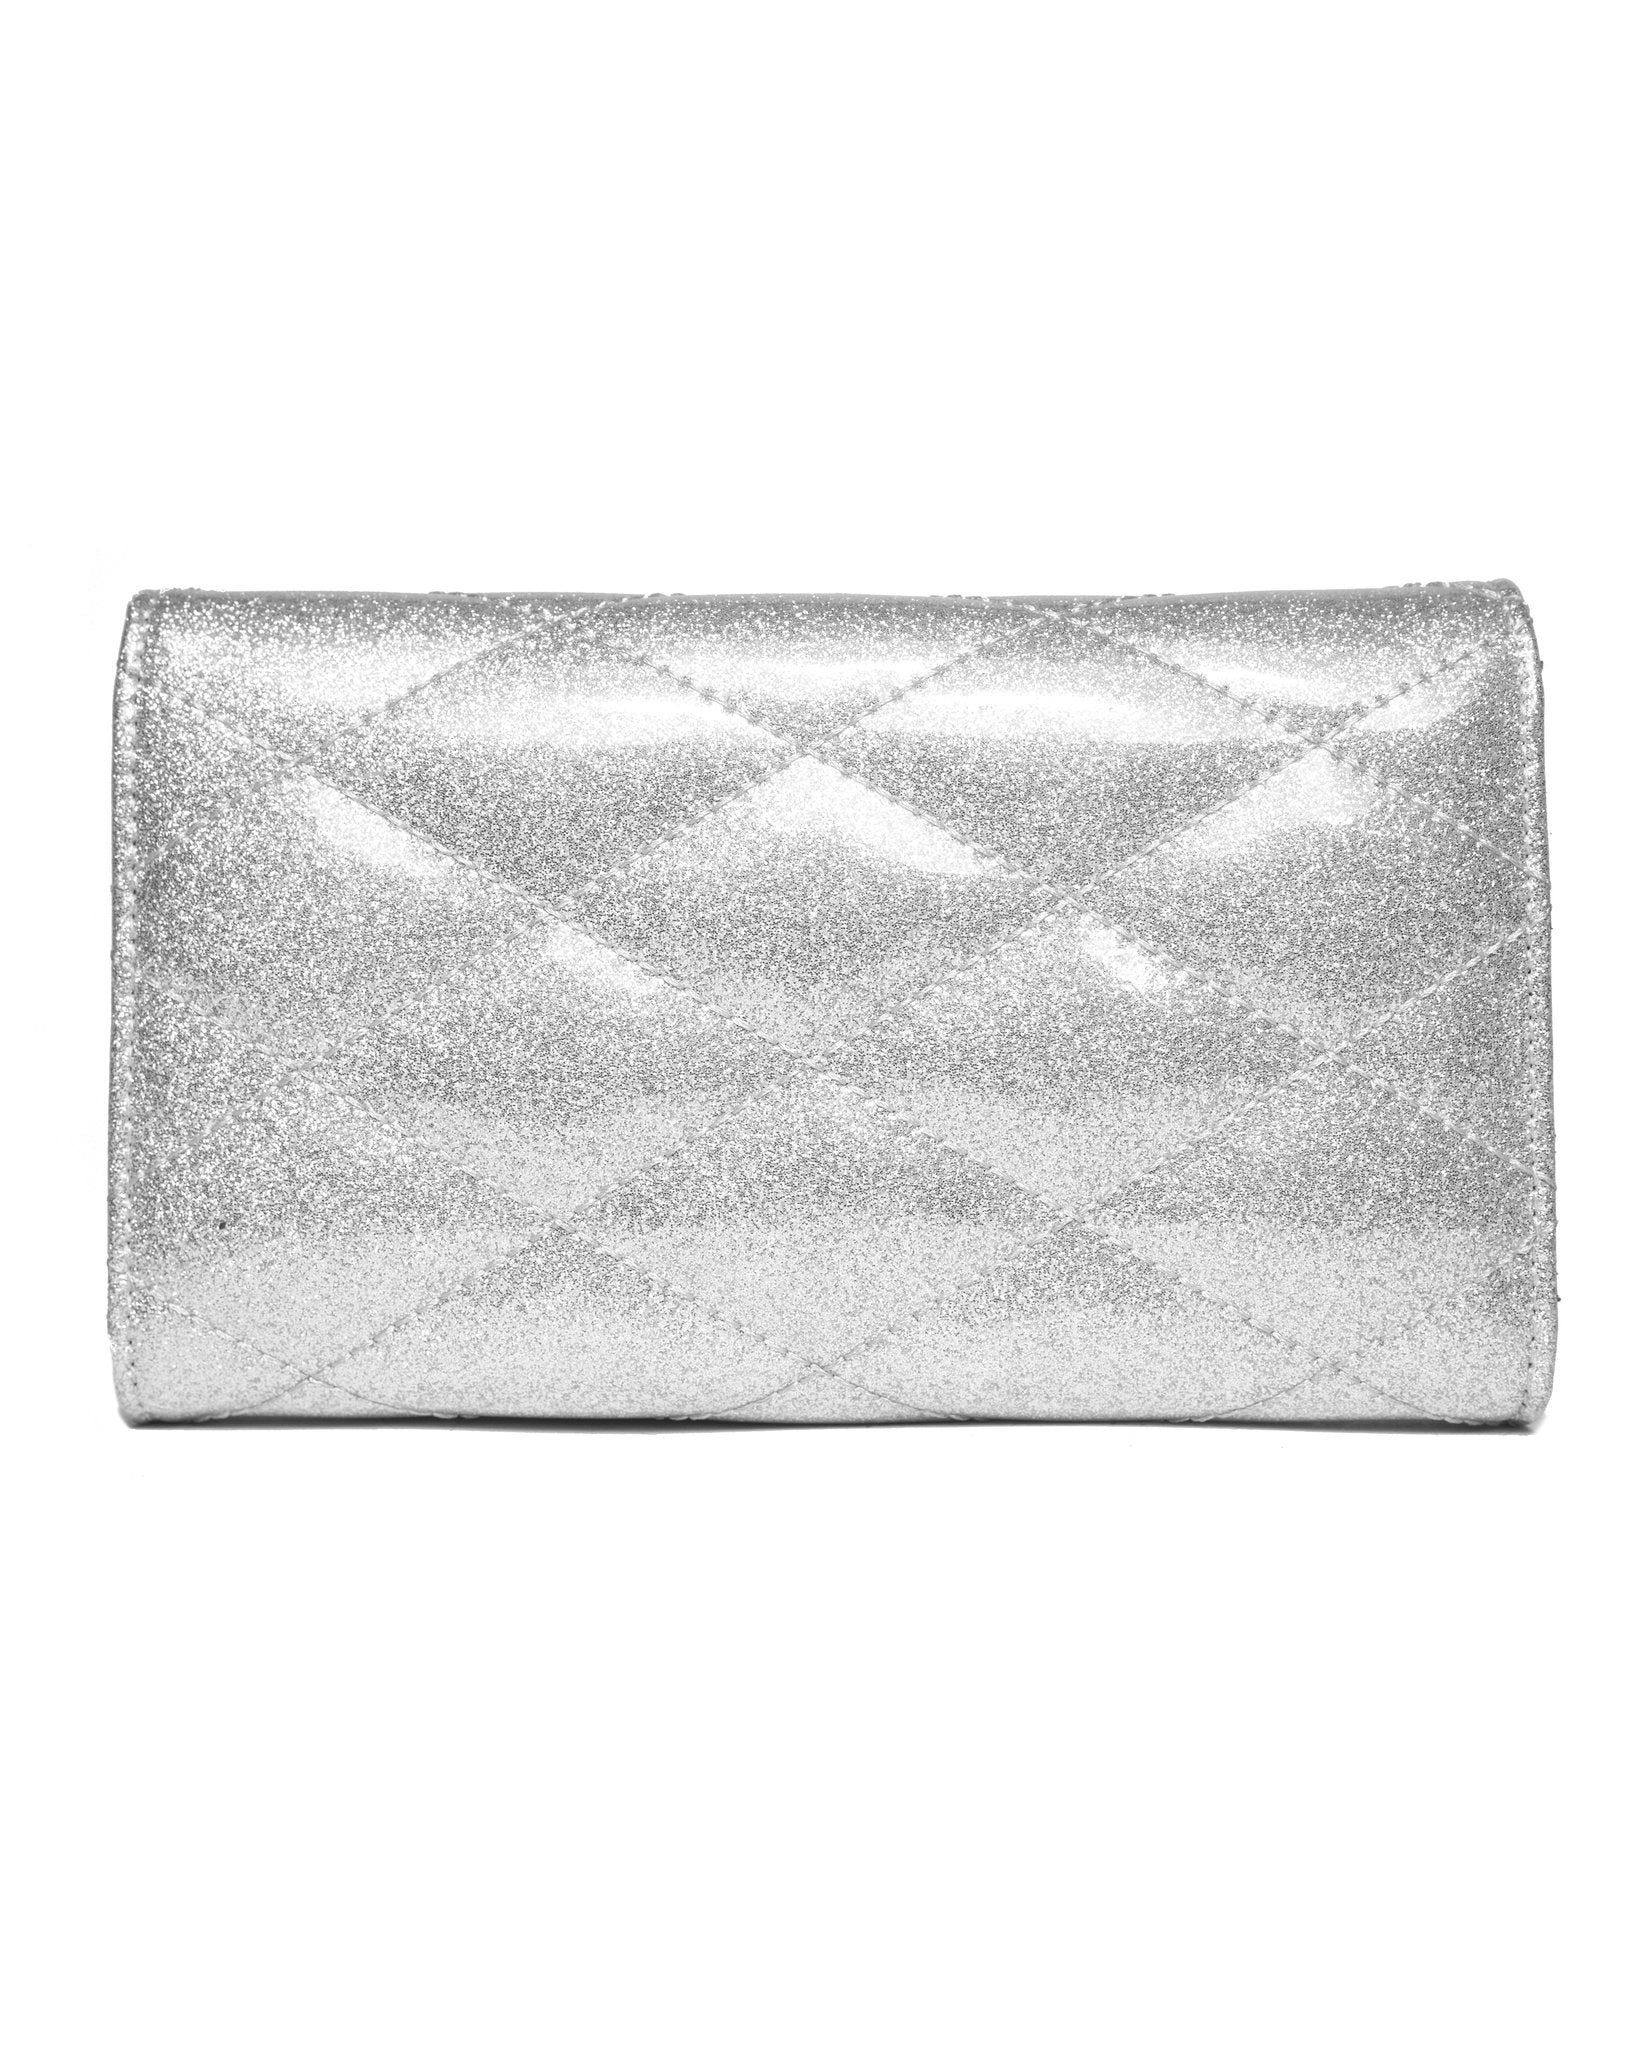 The V-8 Hot Rod Wallet - SILVER THUNDER SPARKLE